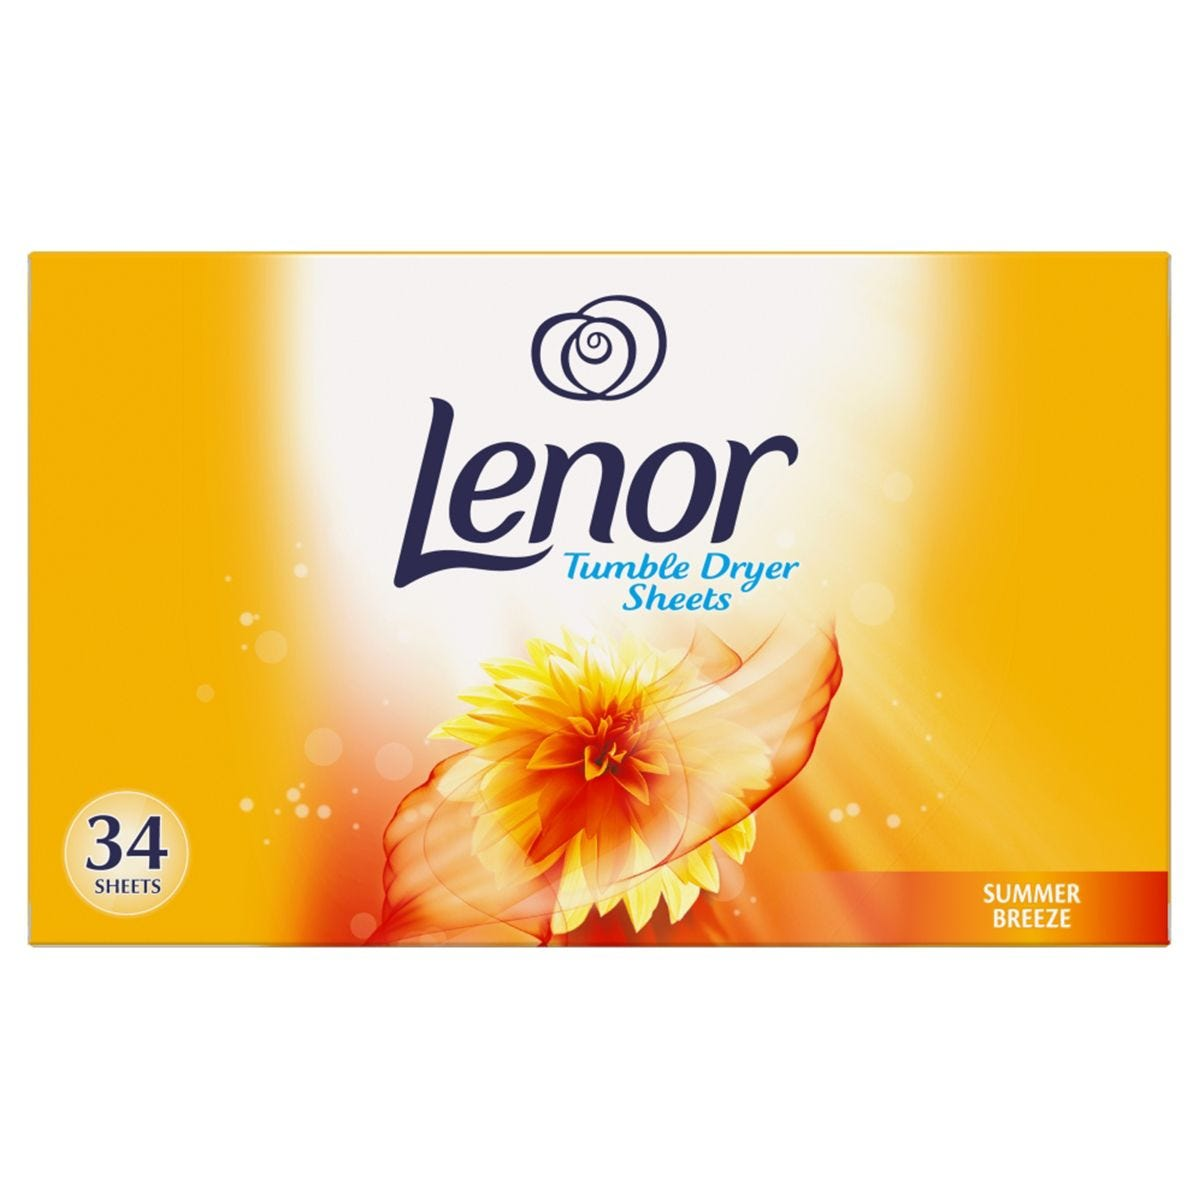 Lenor Summer Breeze Tumble Dryer Sheets - Pack of 34